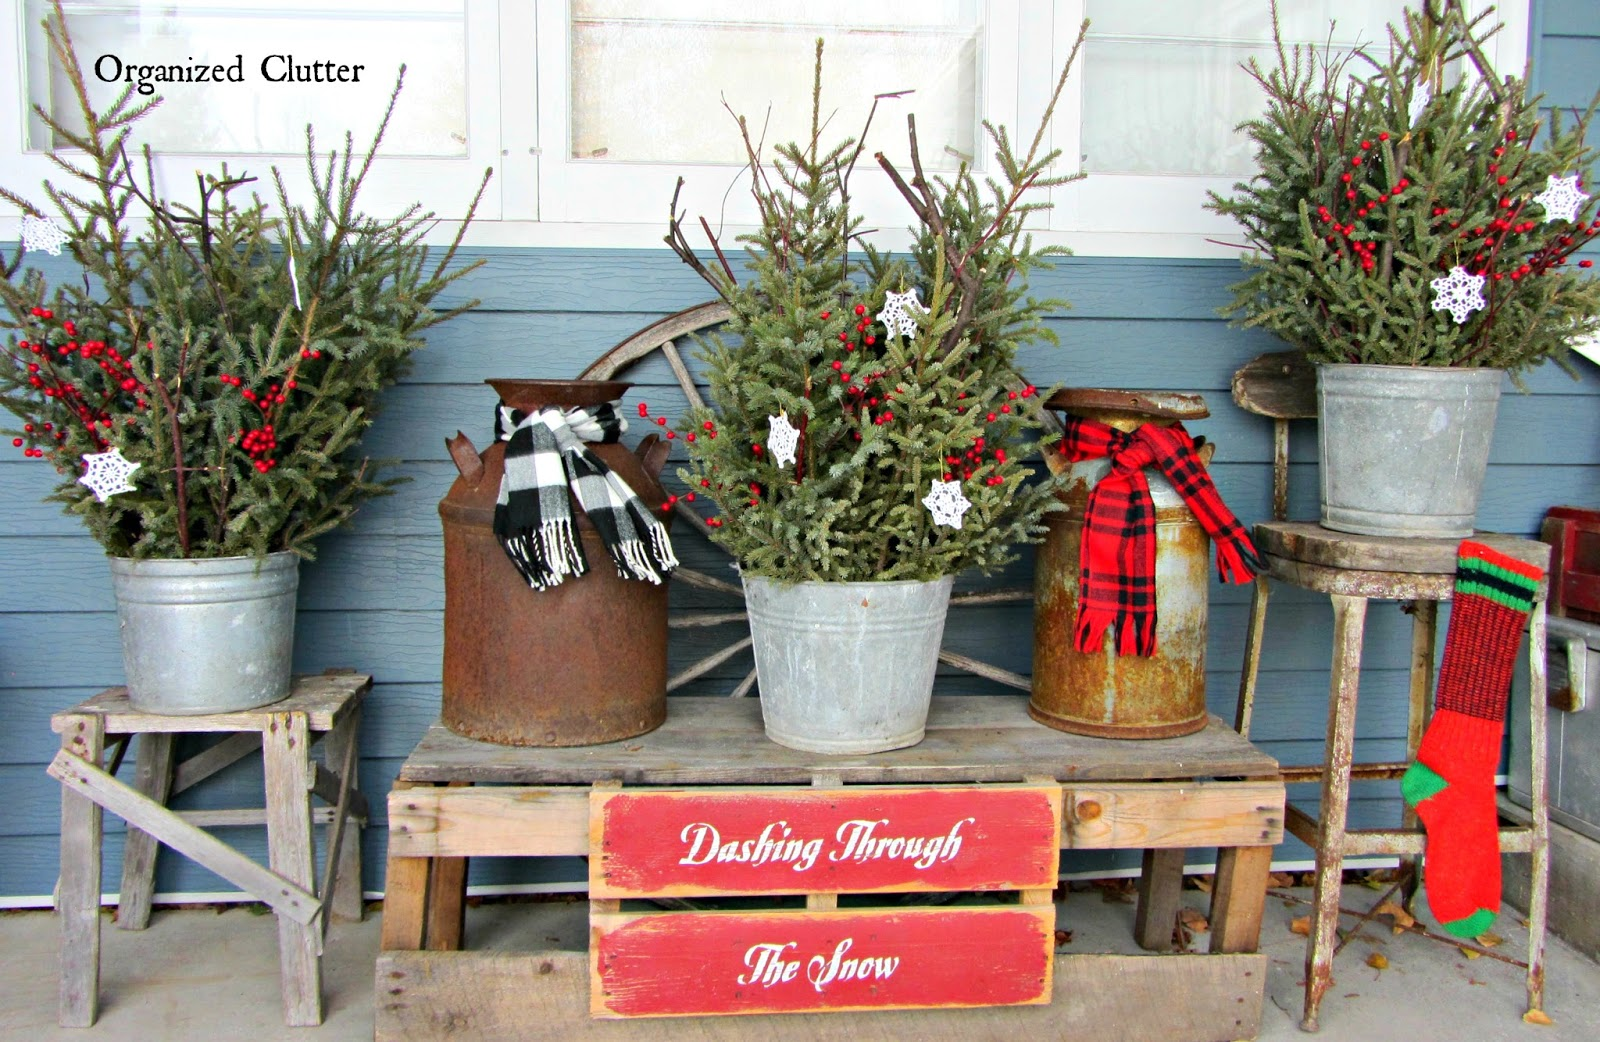 pails milk cans weathered wood christmas greenery wwworganizeclutterqueenblogspot